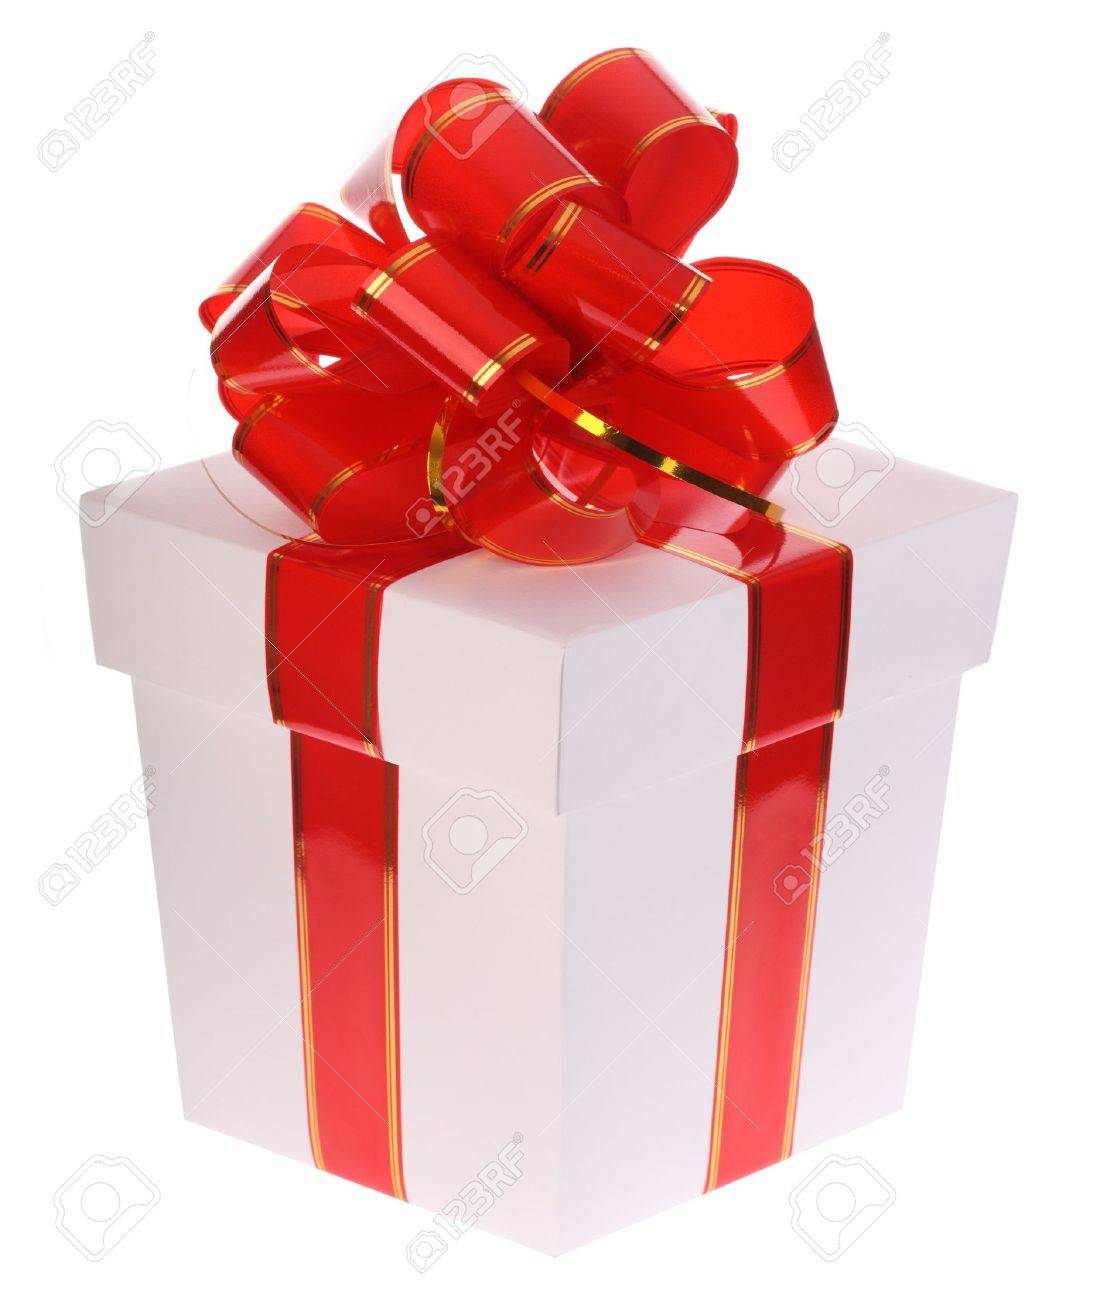 Gift box and red bow. Stock Photo - 3841374